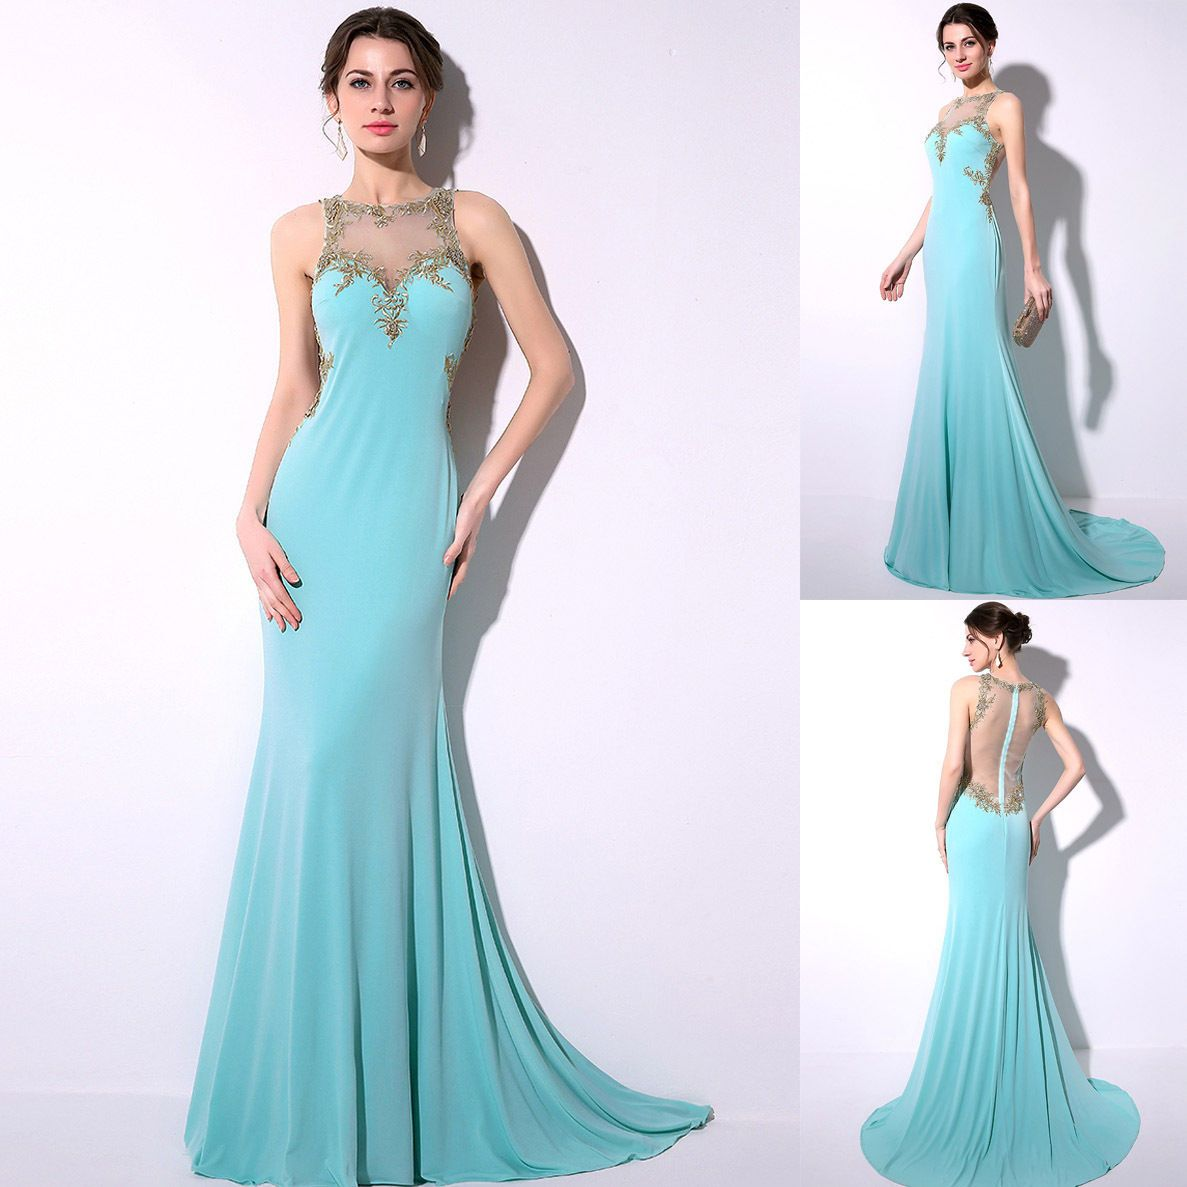 Gold Applique Long Womens Formal Evening Party Dress Gowns Bridal ...